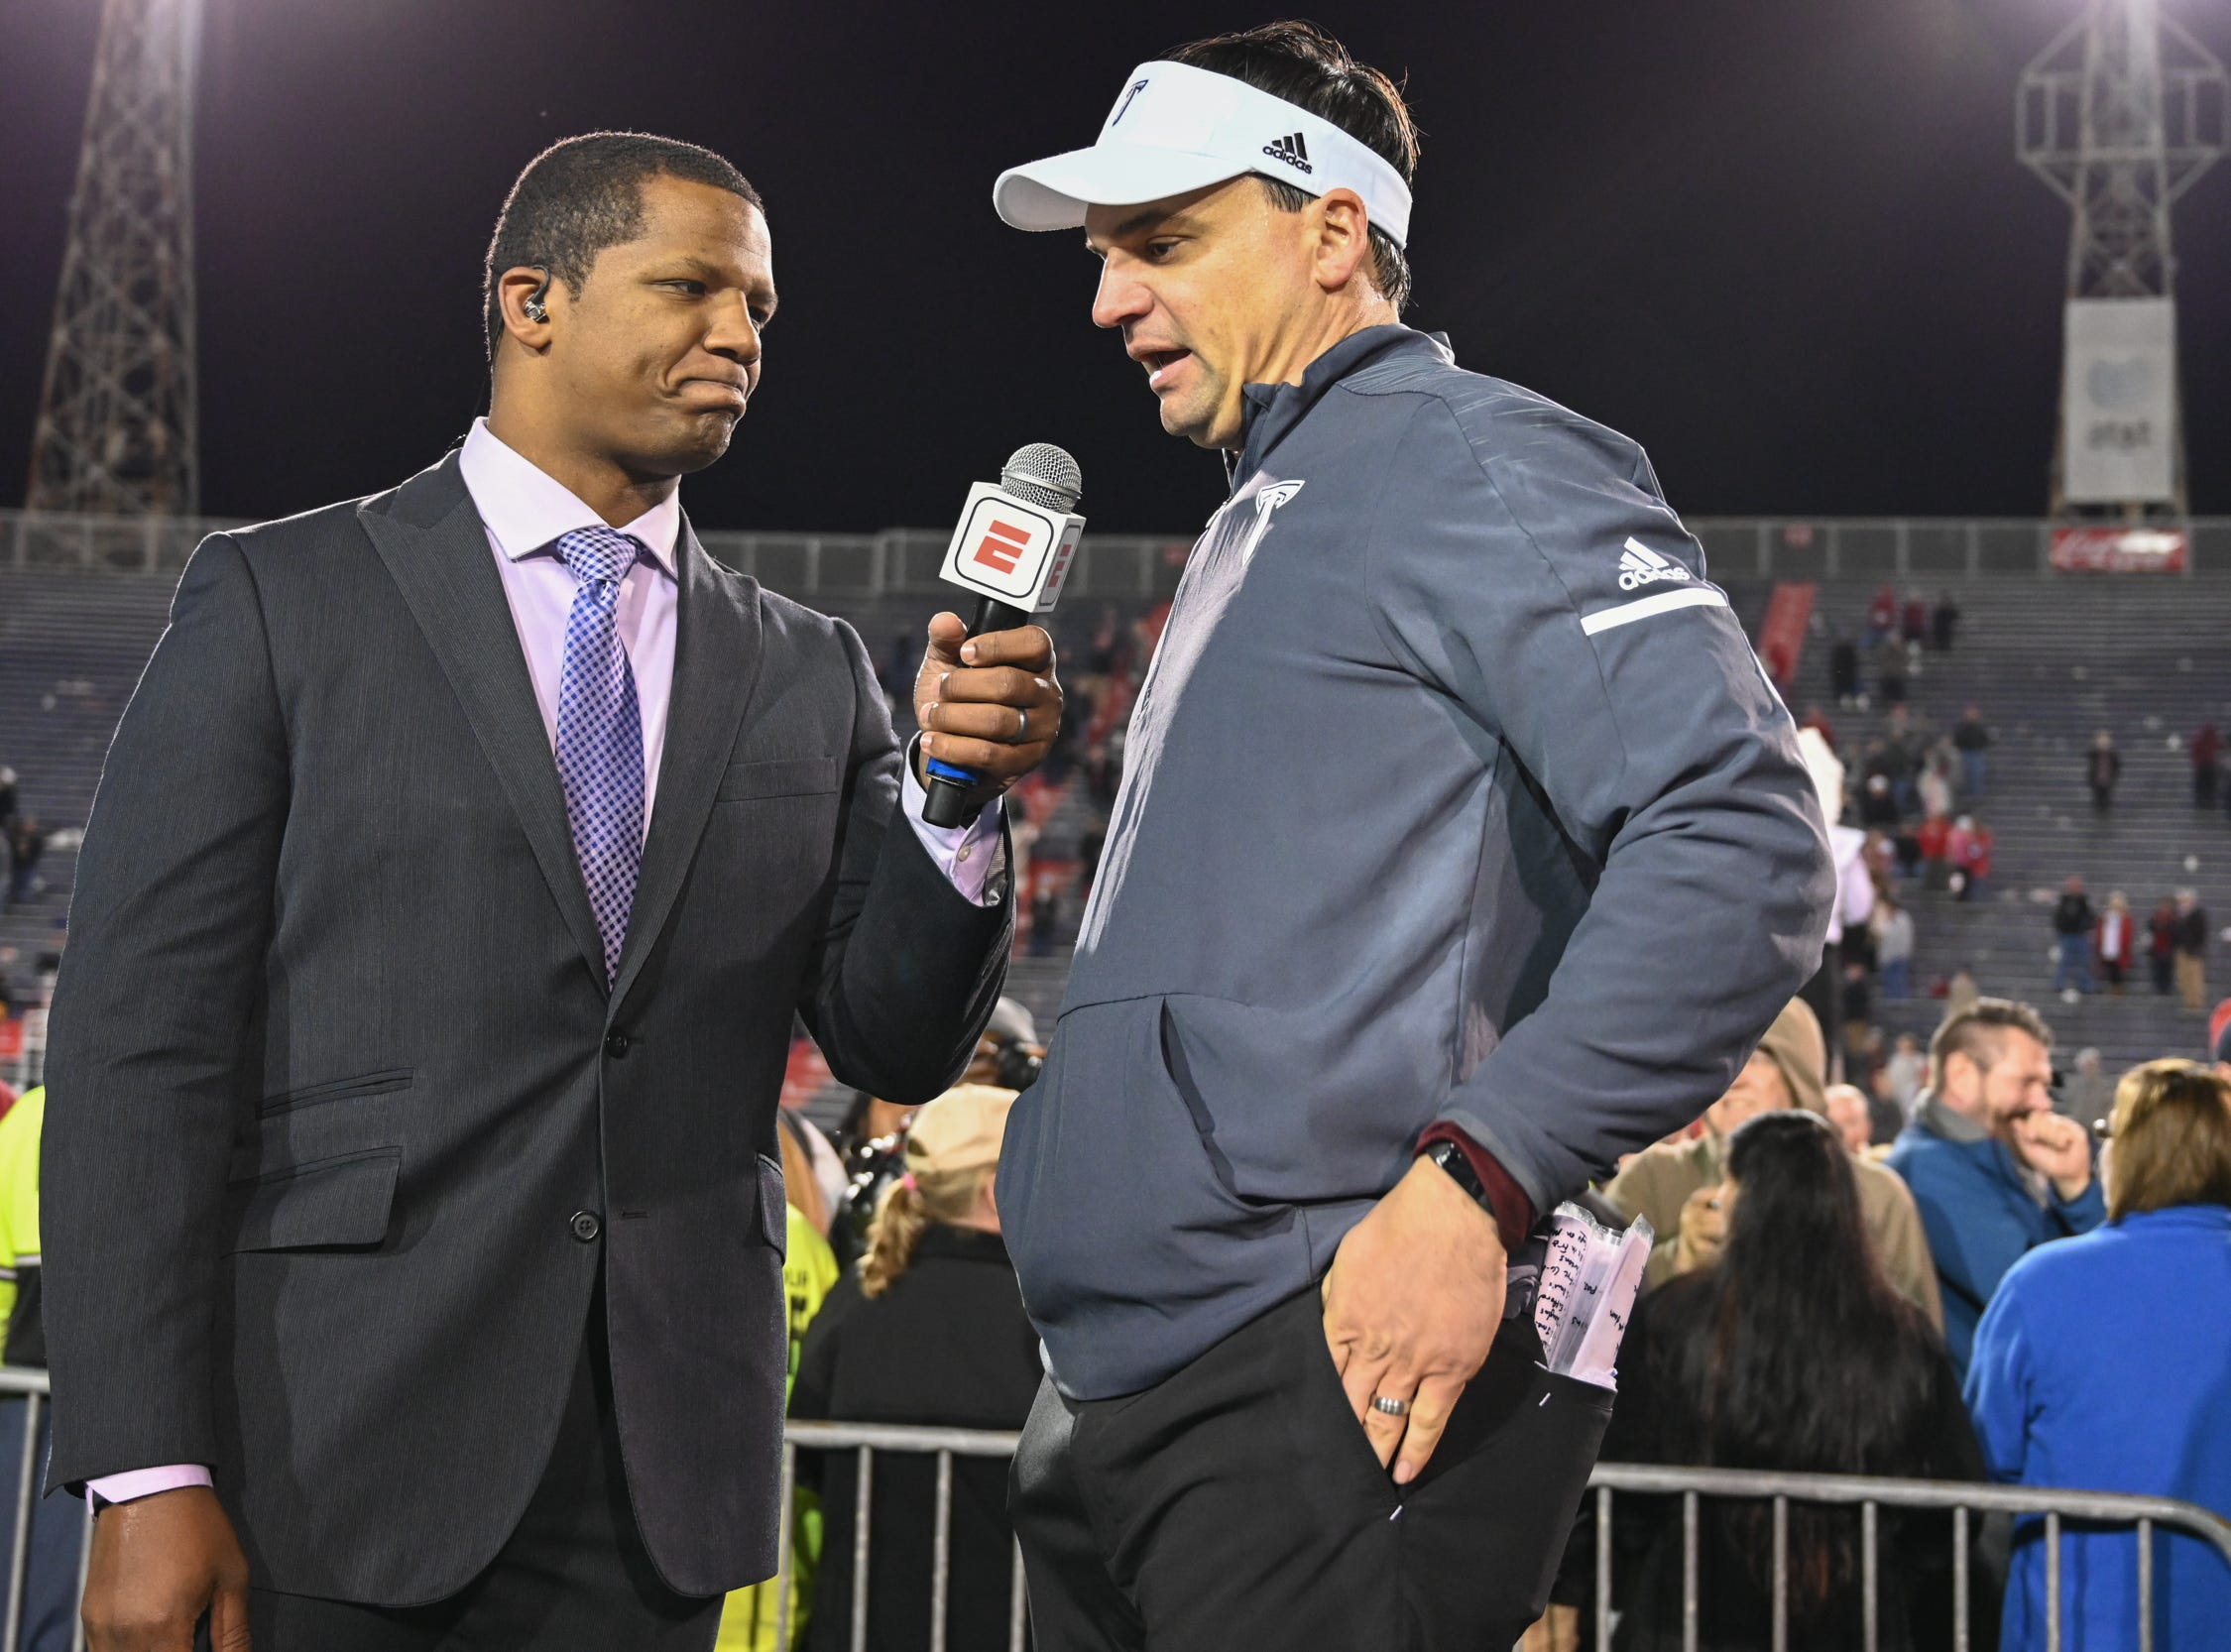 Troy head coach Neal Brown is interviewed at the conclusion of the trophy presentation of the Dollar General Bowl held at Ladd-Peebles Stadium in Mobile on Saturday, Dec. 22, 2018.